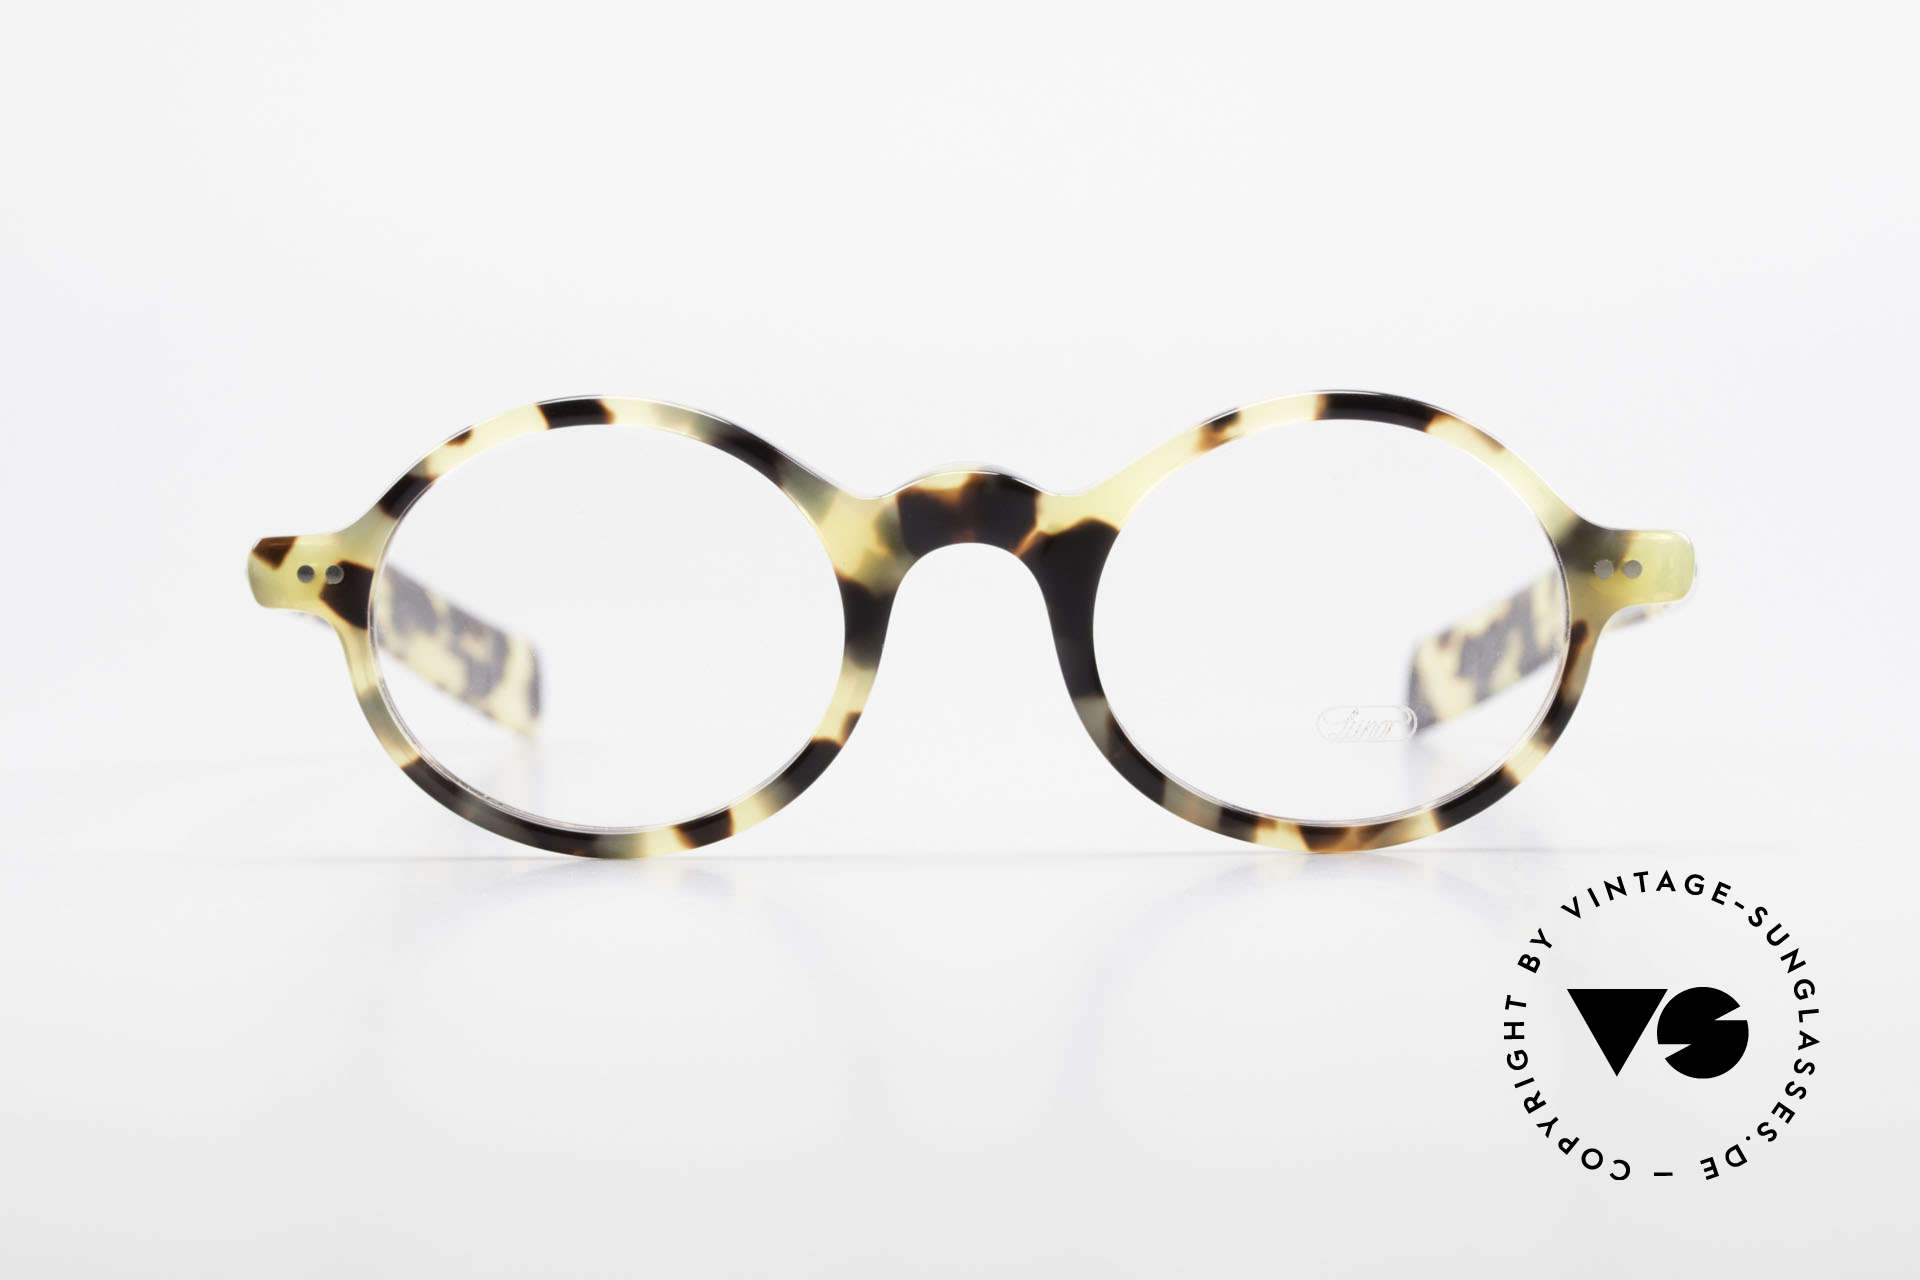 Lunor A52 Oval Lunor Glasses Acetate, riveted hinges; cut precise to the tenth of a millimeter, Made for Men and Women